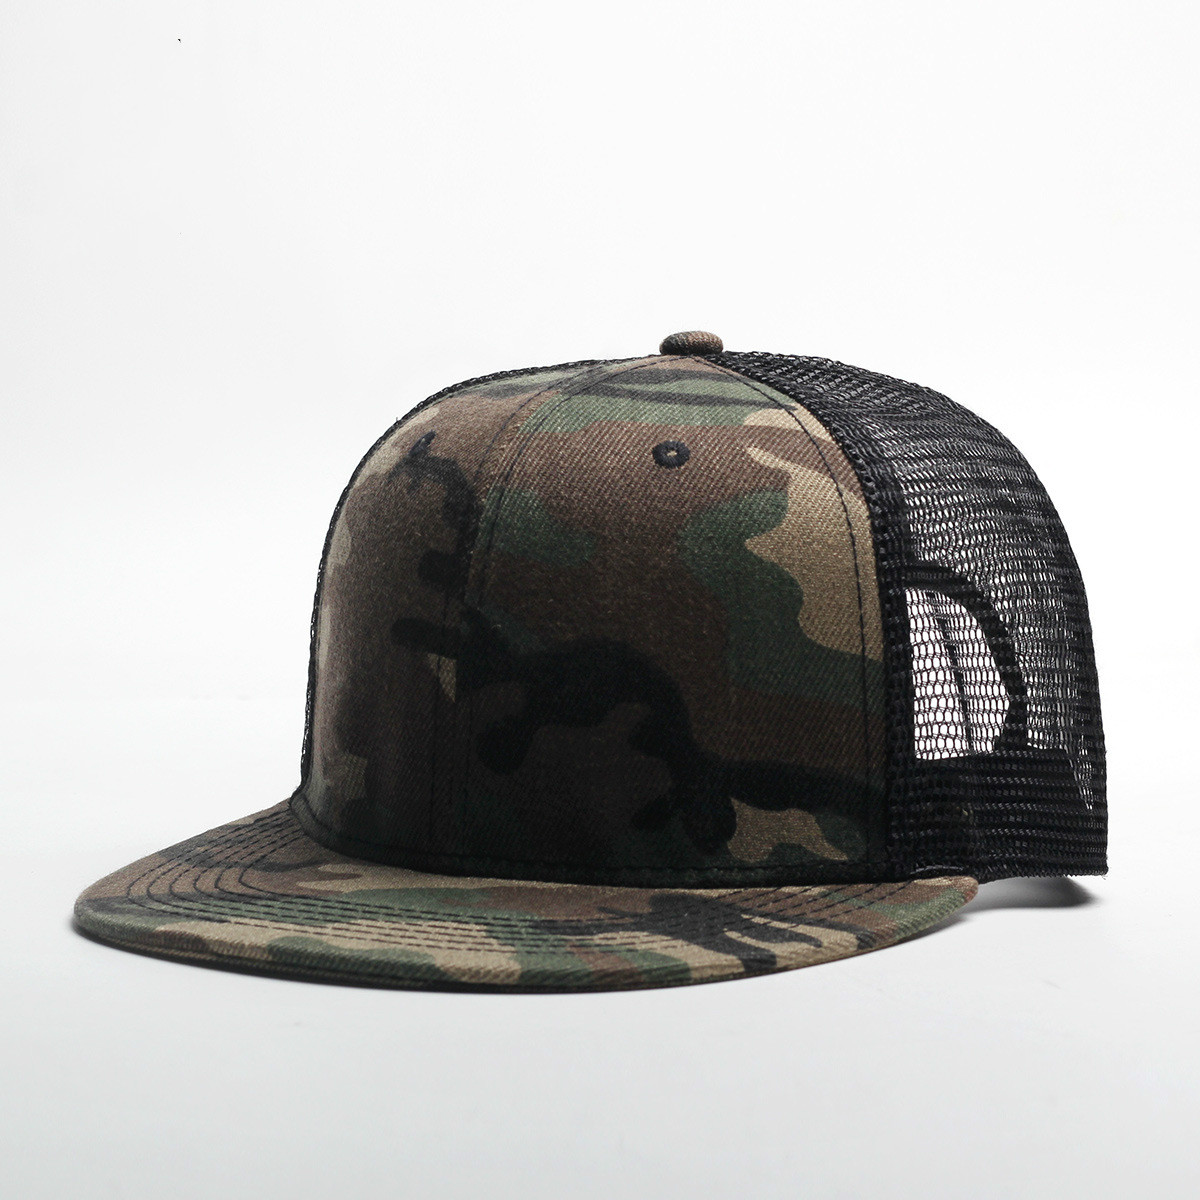 2019 New Spring And Summer Solid Color Mesh Flat Hat Men's And Women's Sports Hat Fashion Hip Hop Hat